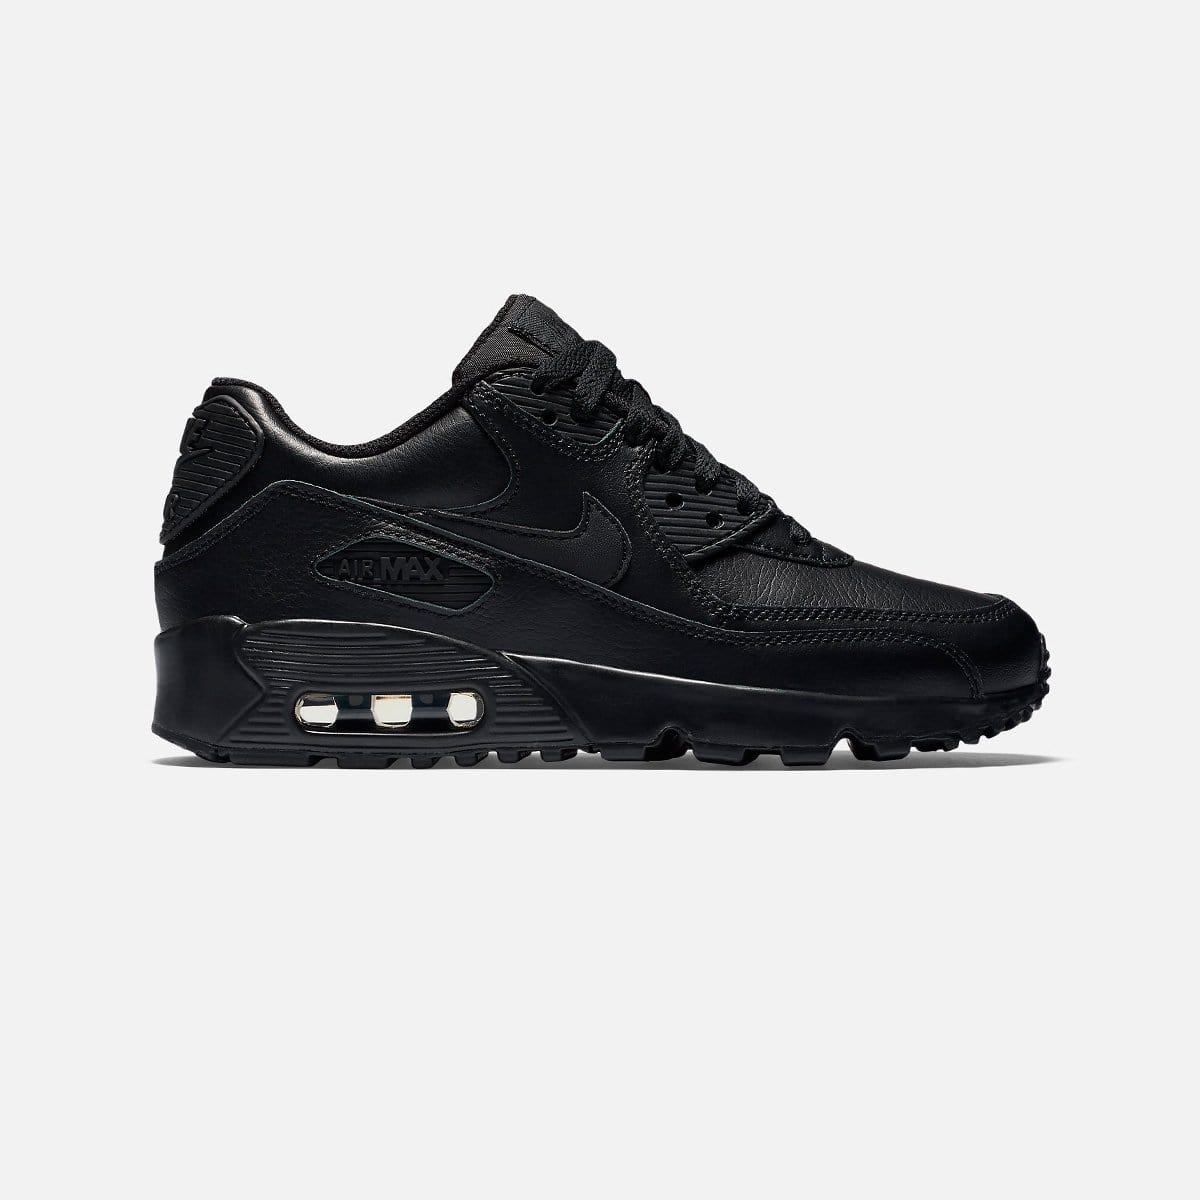 AIR MAX 90 LEATHER GRADE-SCHOOL – DTLR